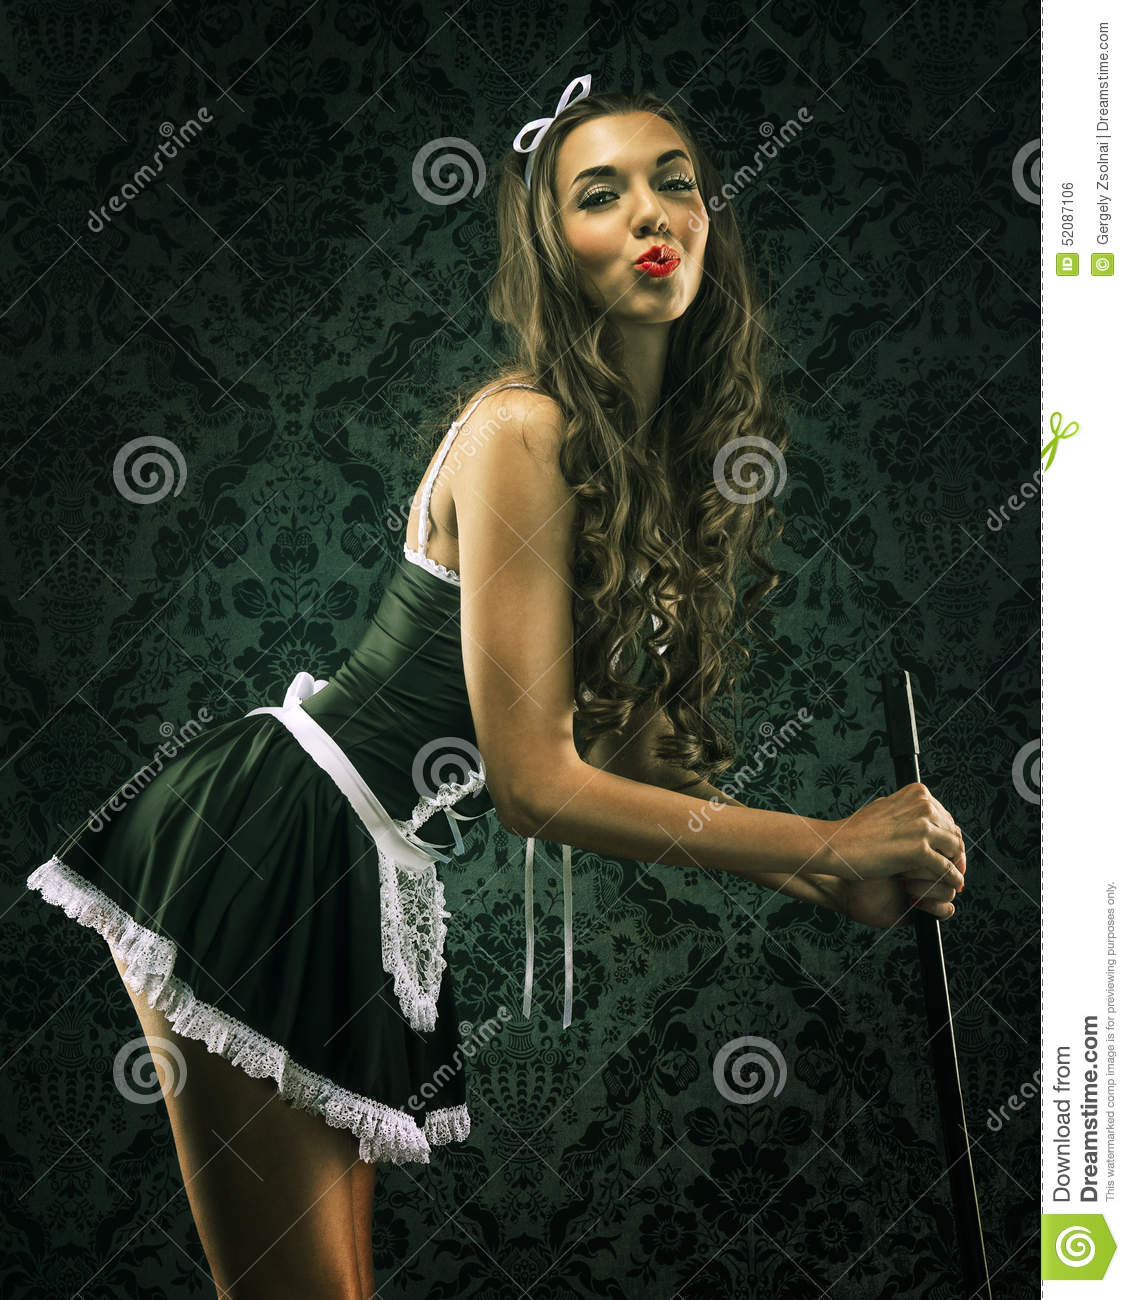 Vintage pin up maid's uniform, holding a broom .